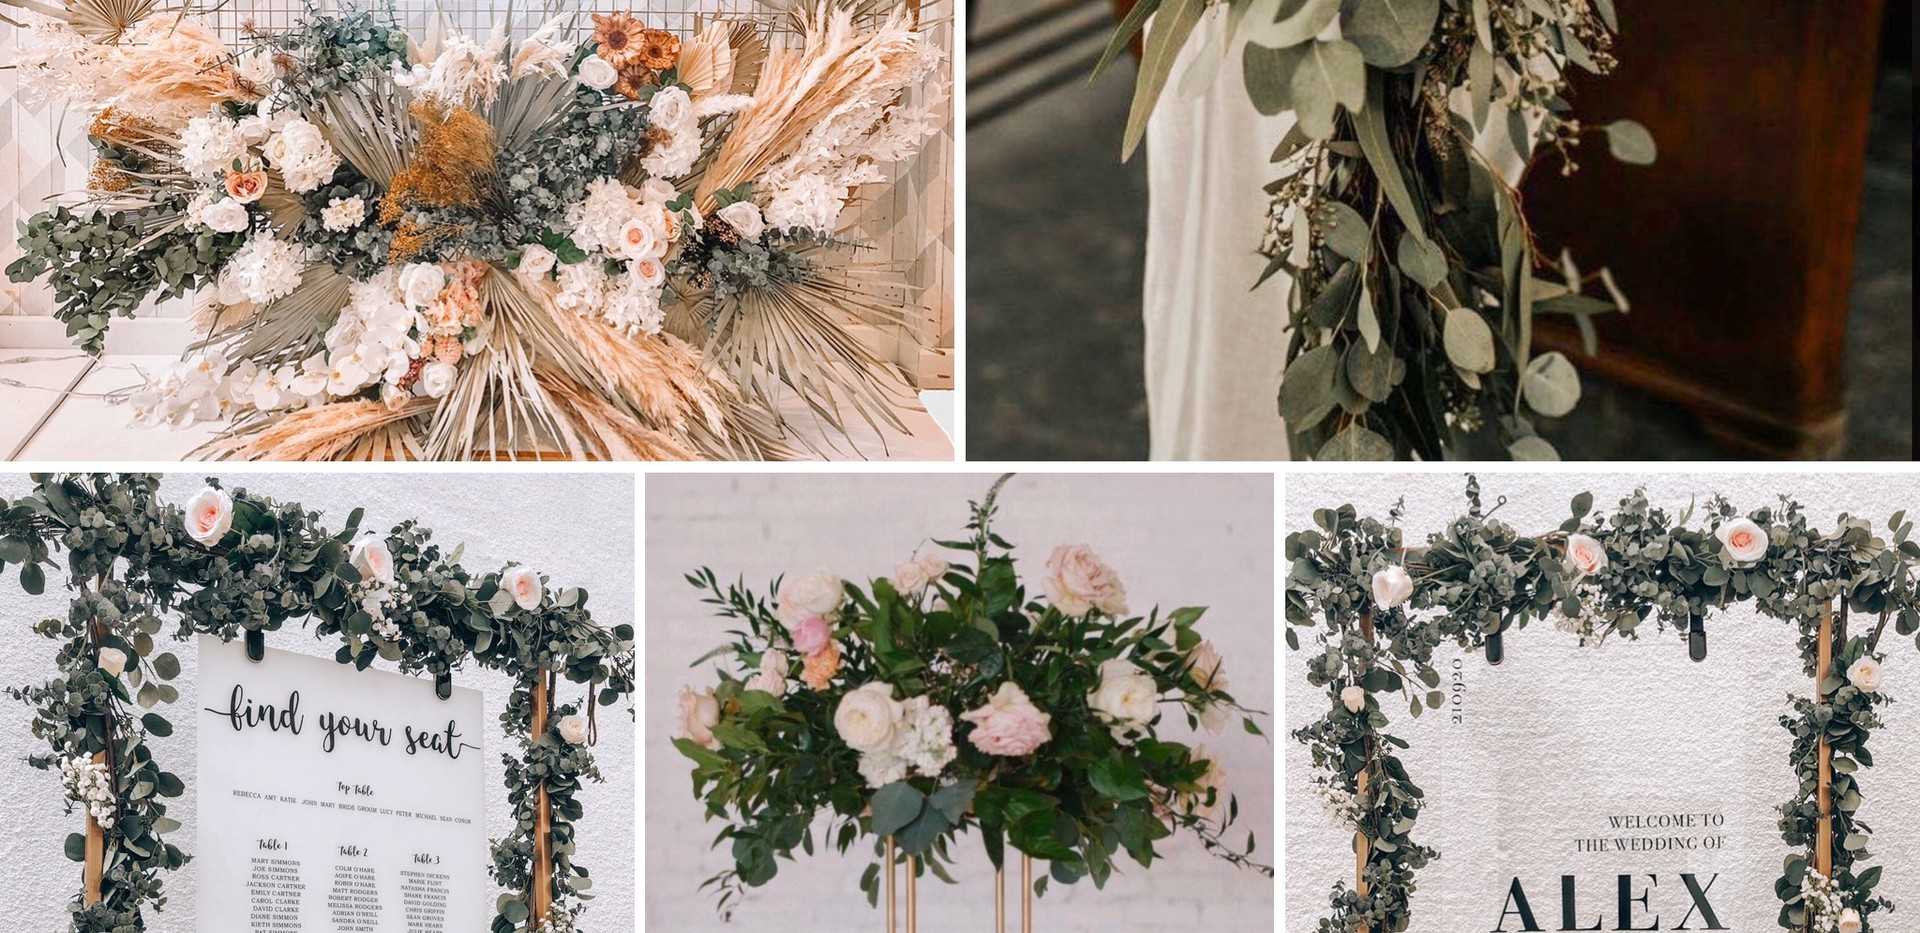 The Style Package  What's included:  *Backdrop of choice  *Table centre pieces *Floral top table runner *Welcome signage  *Table plan signage   All items are designed bespoke to match your theme